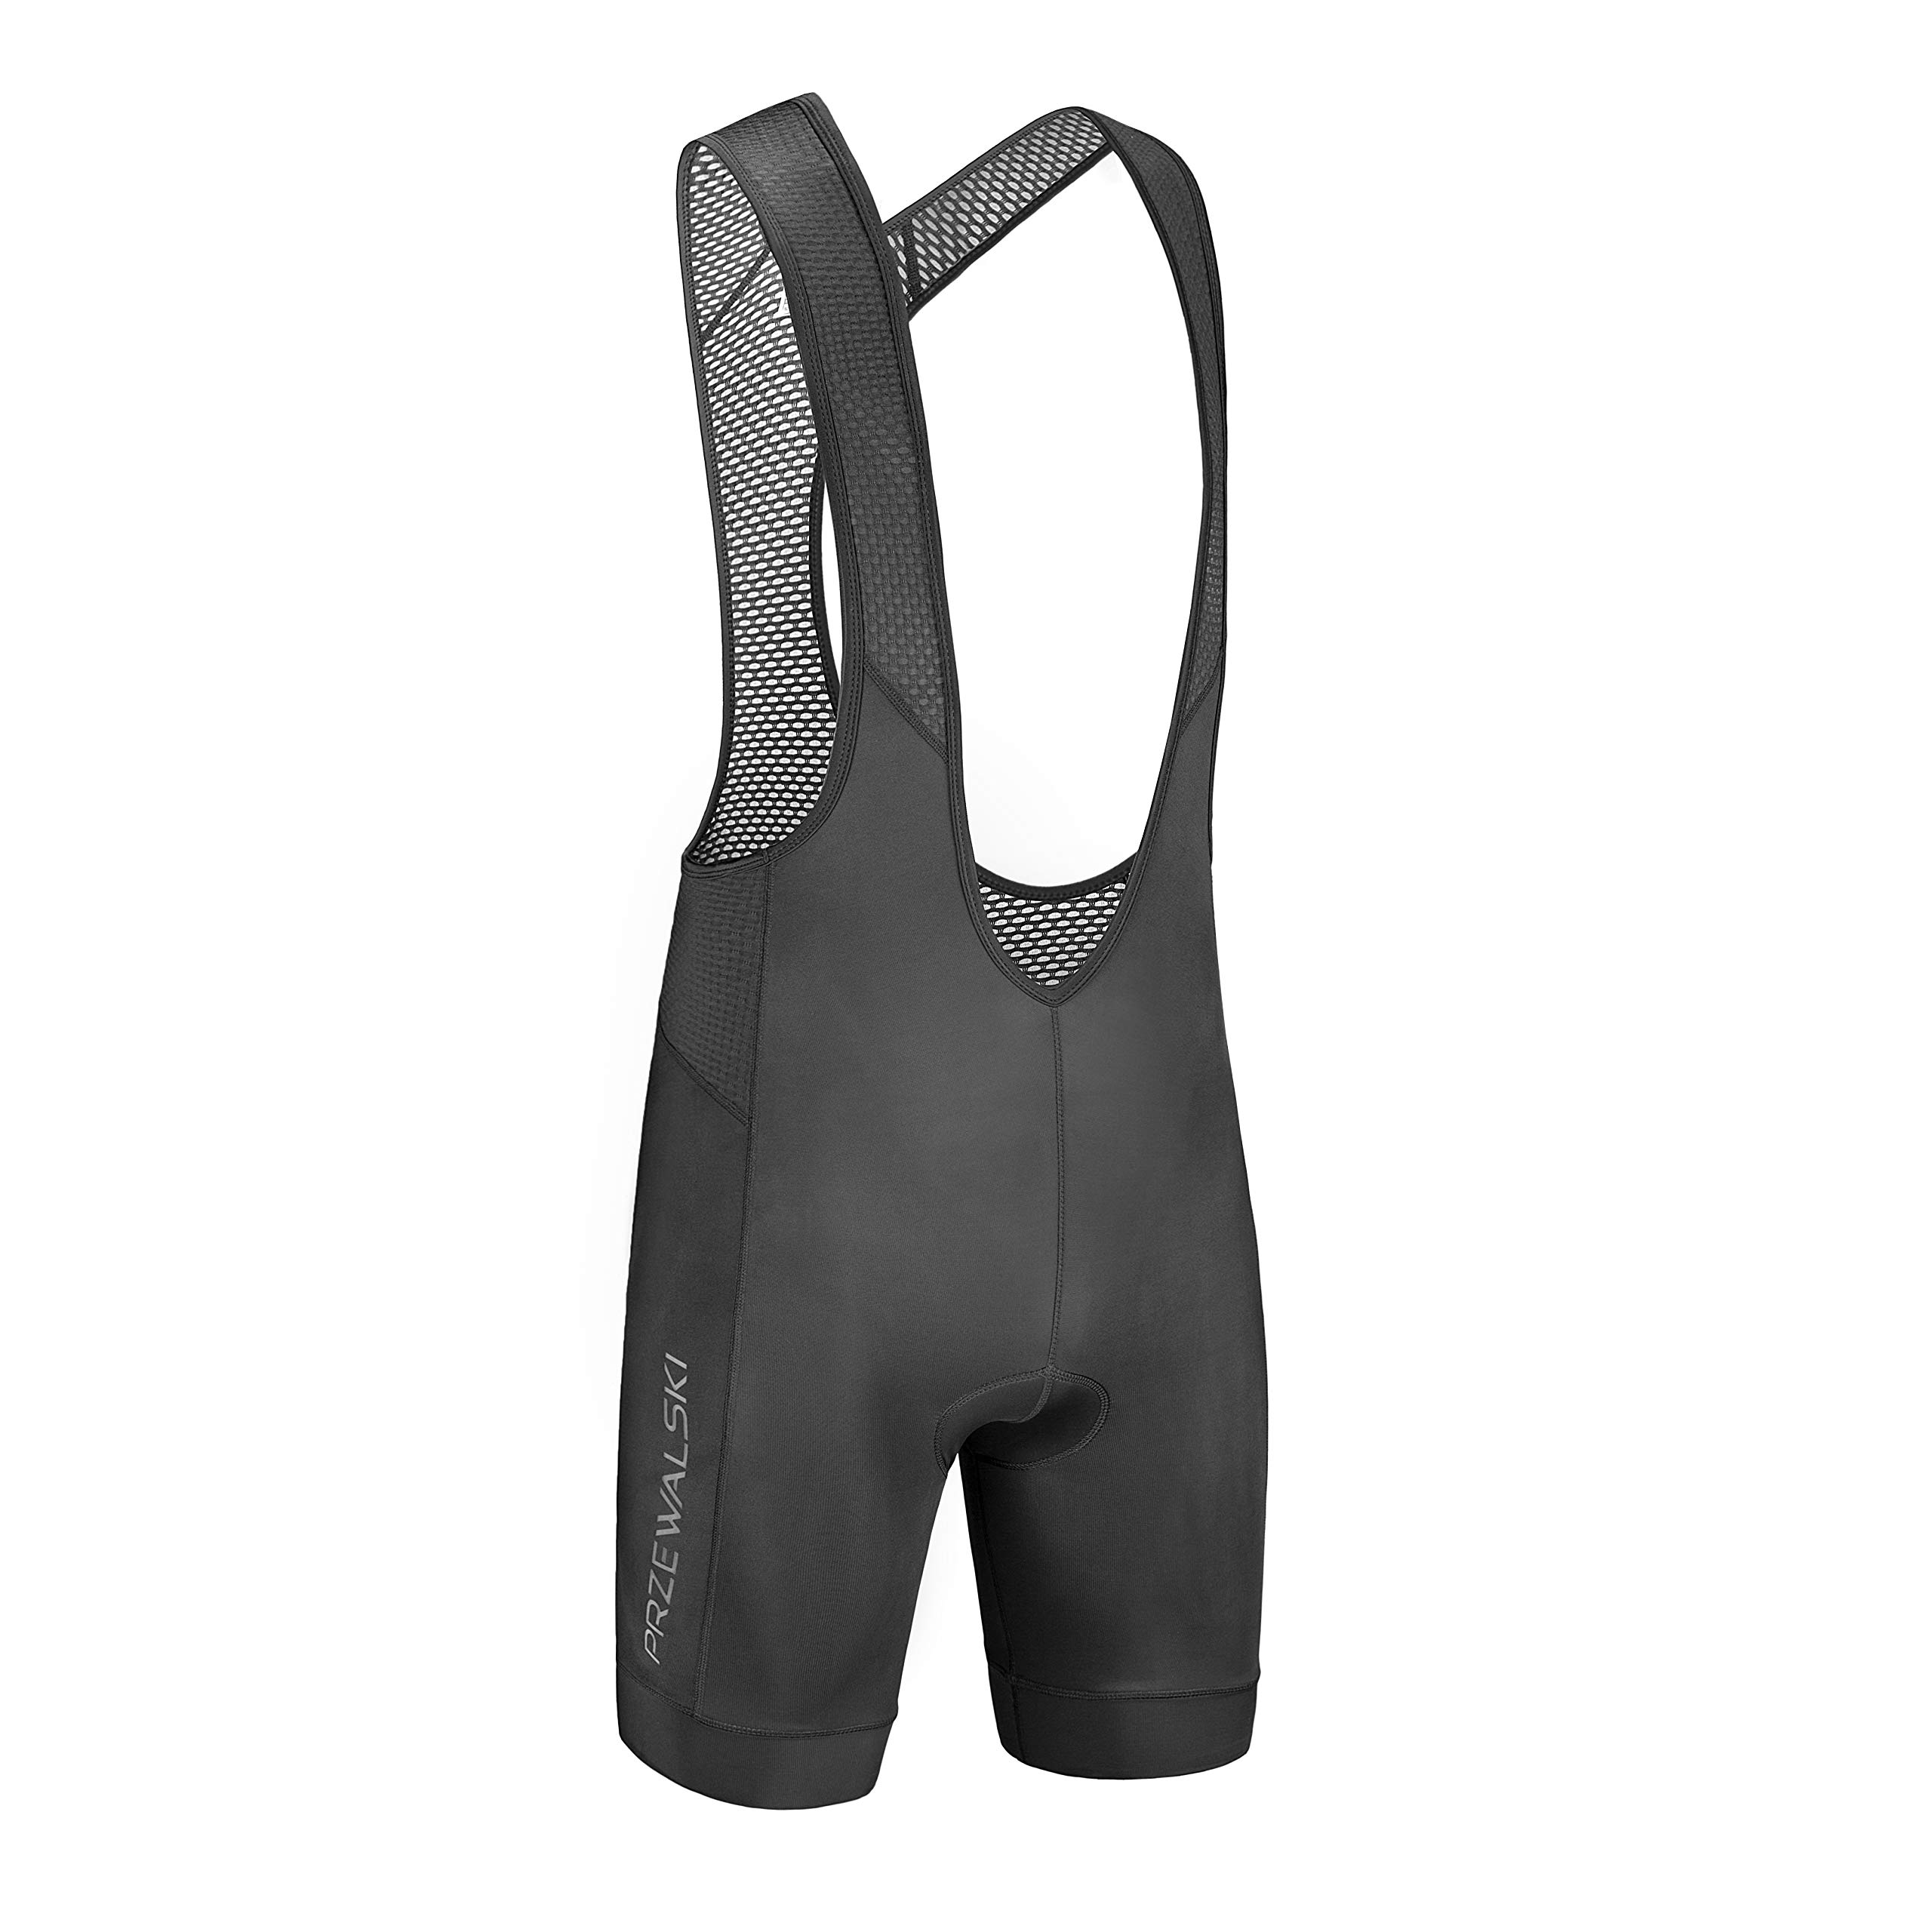 Przewalski Men's Cycling Bib Shorts, 4D Padded Compression Bike Tights Breathable Bicycle Pants UPF 50+, Classic Series, Black/M by Przewalski (Image #1)